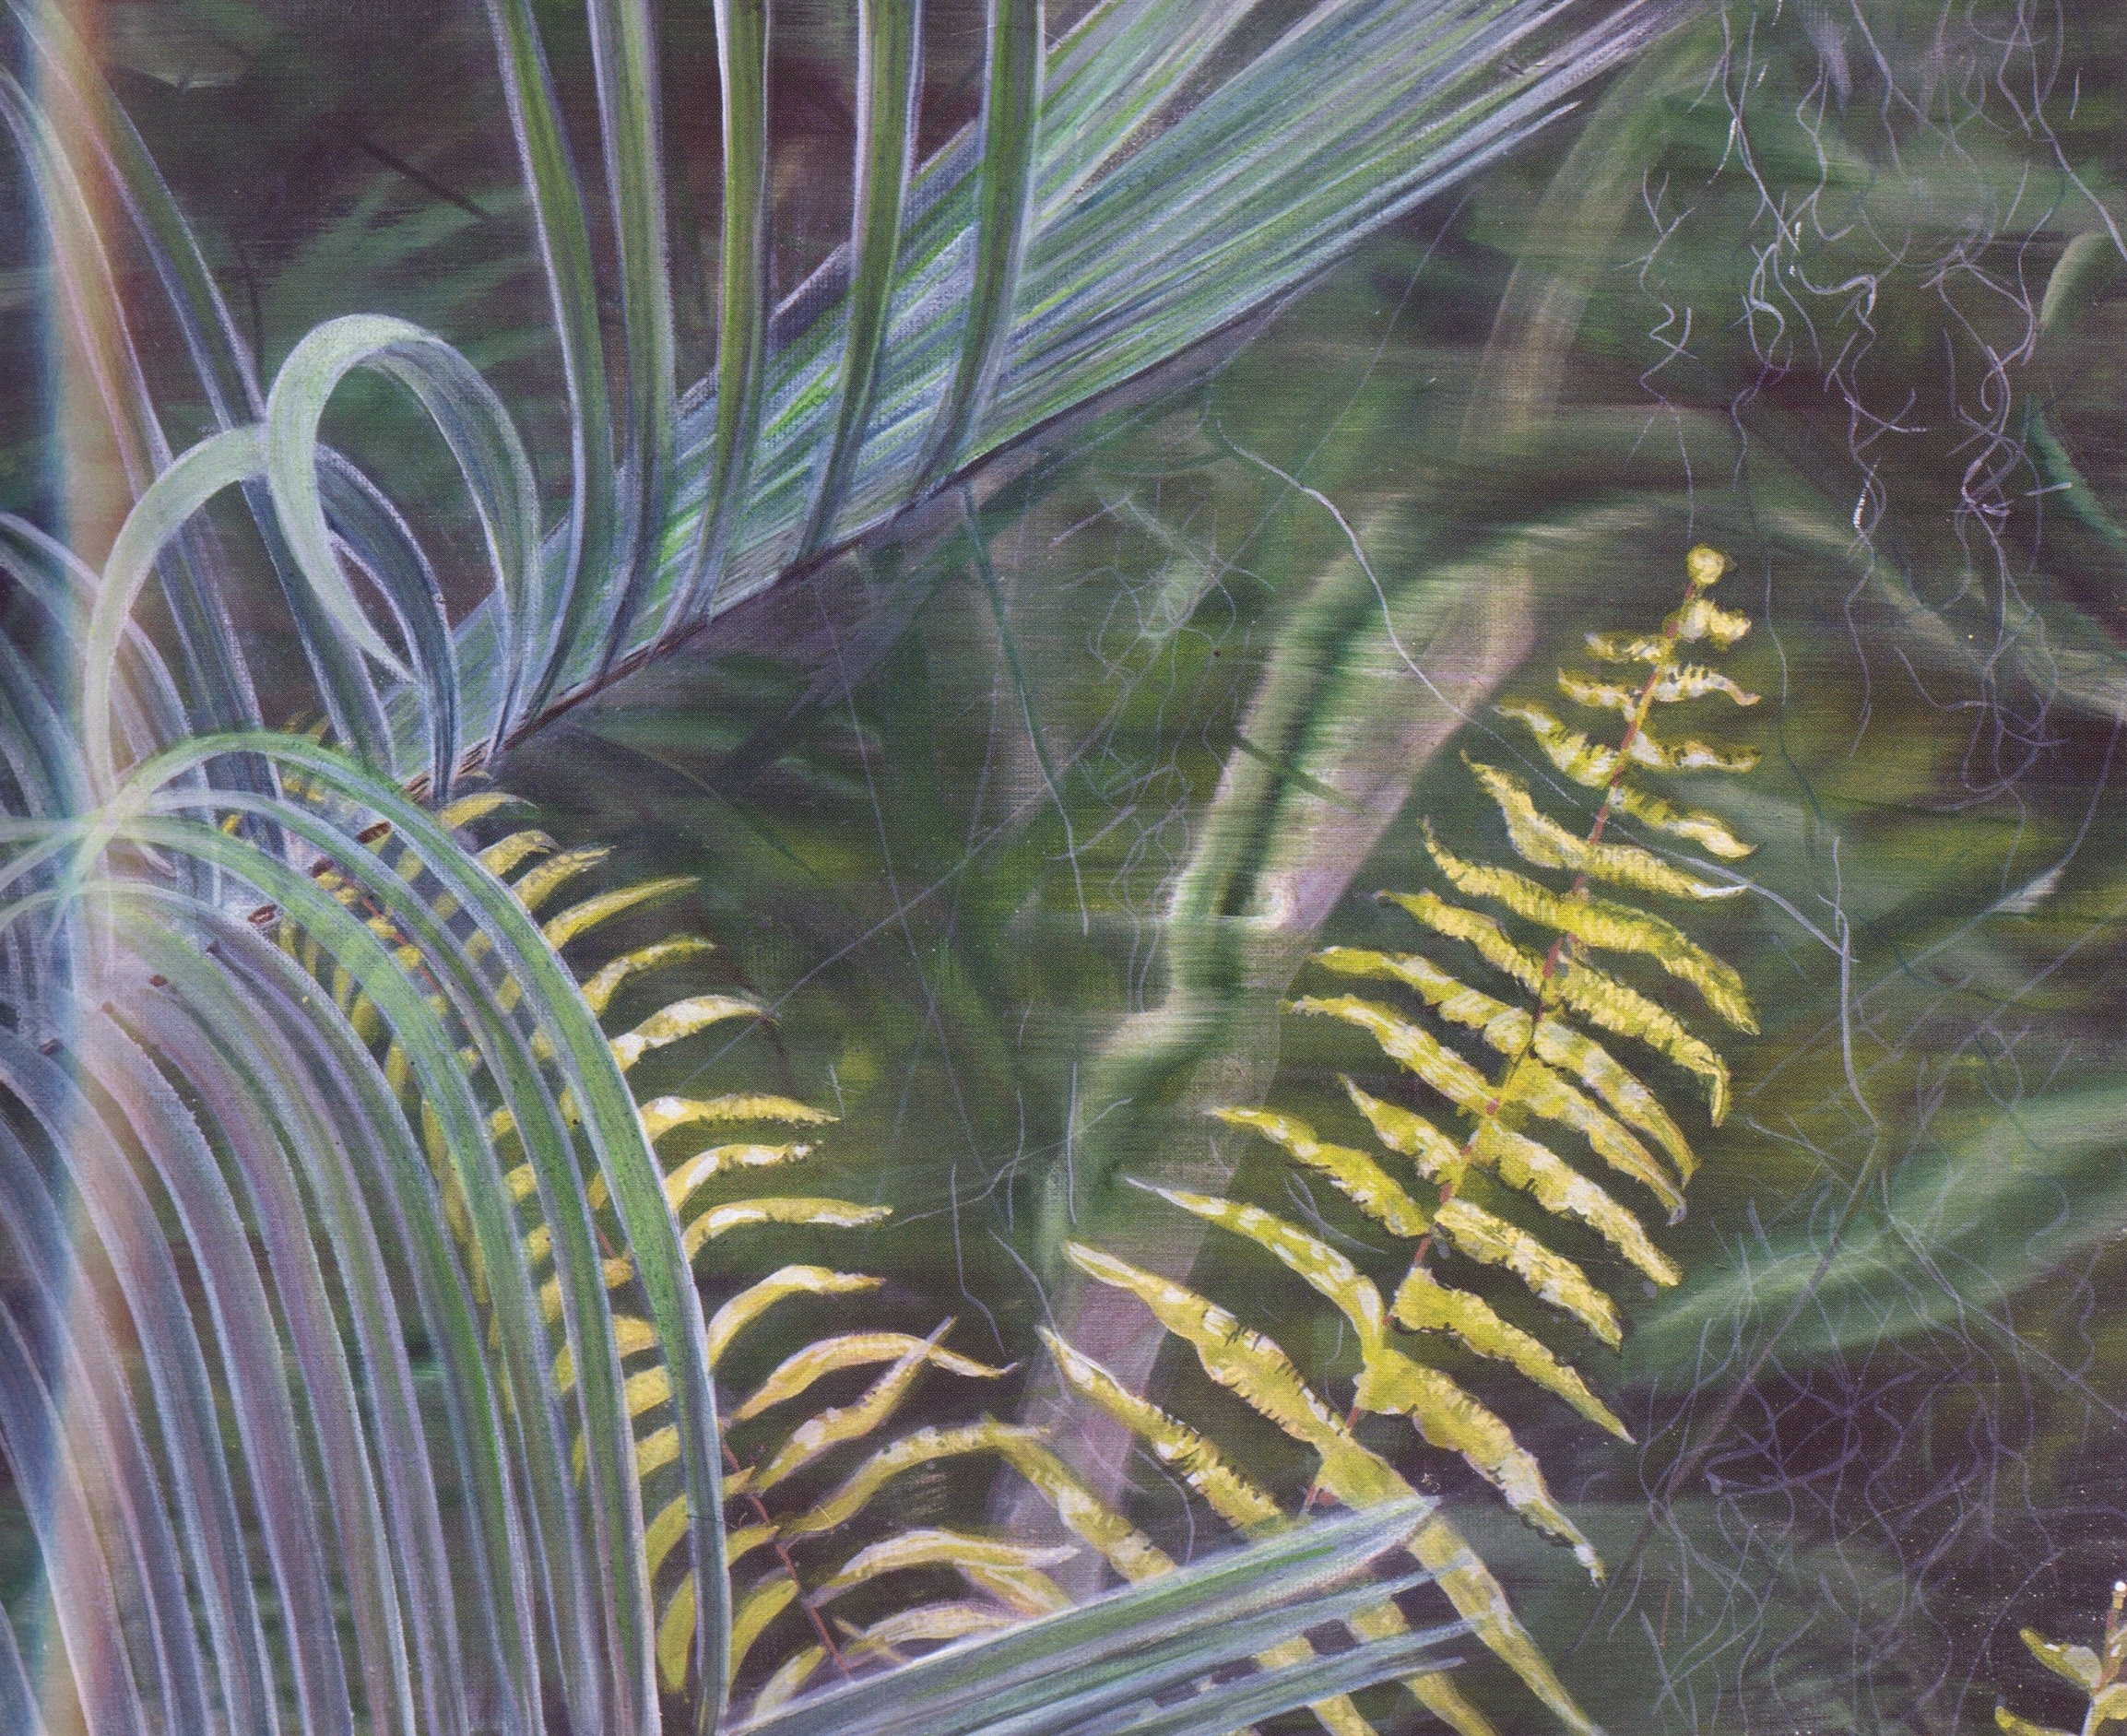 Frond and Fern   Oil on canvas, 20'' x 24'', 2004